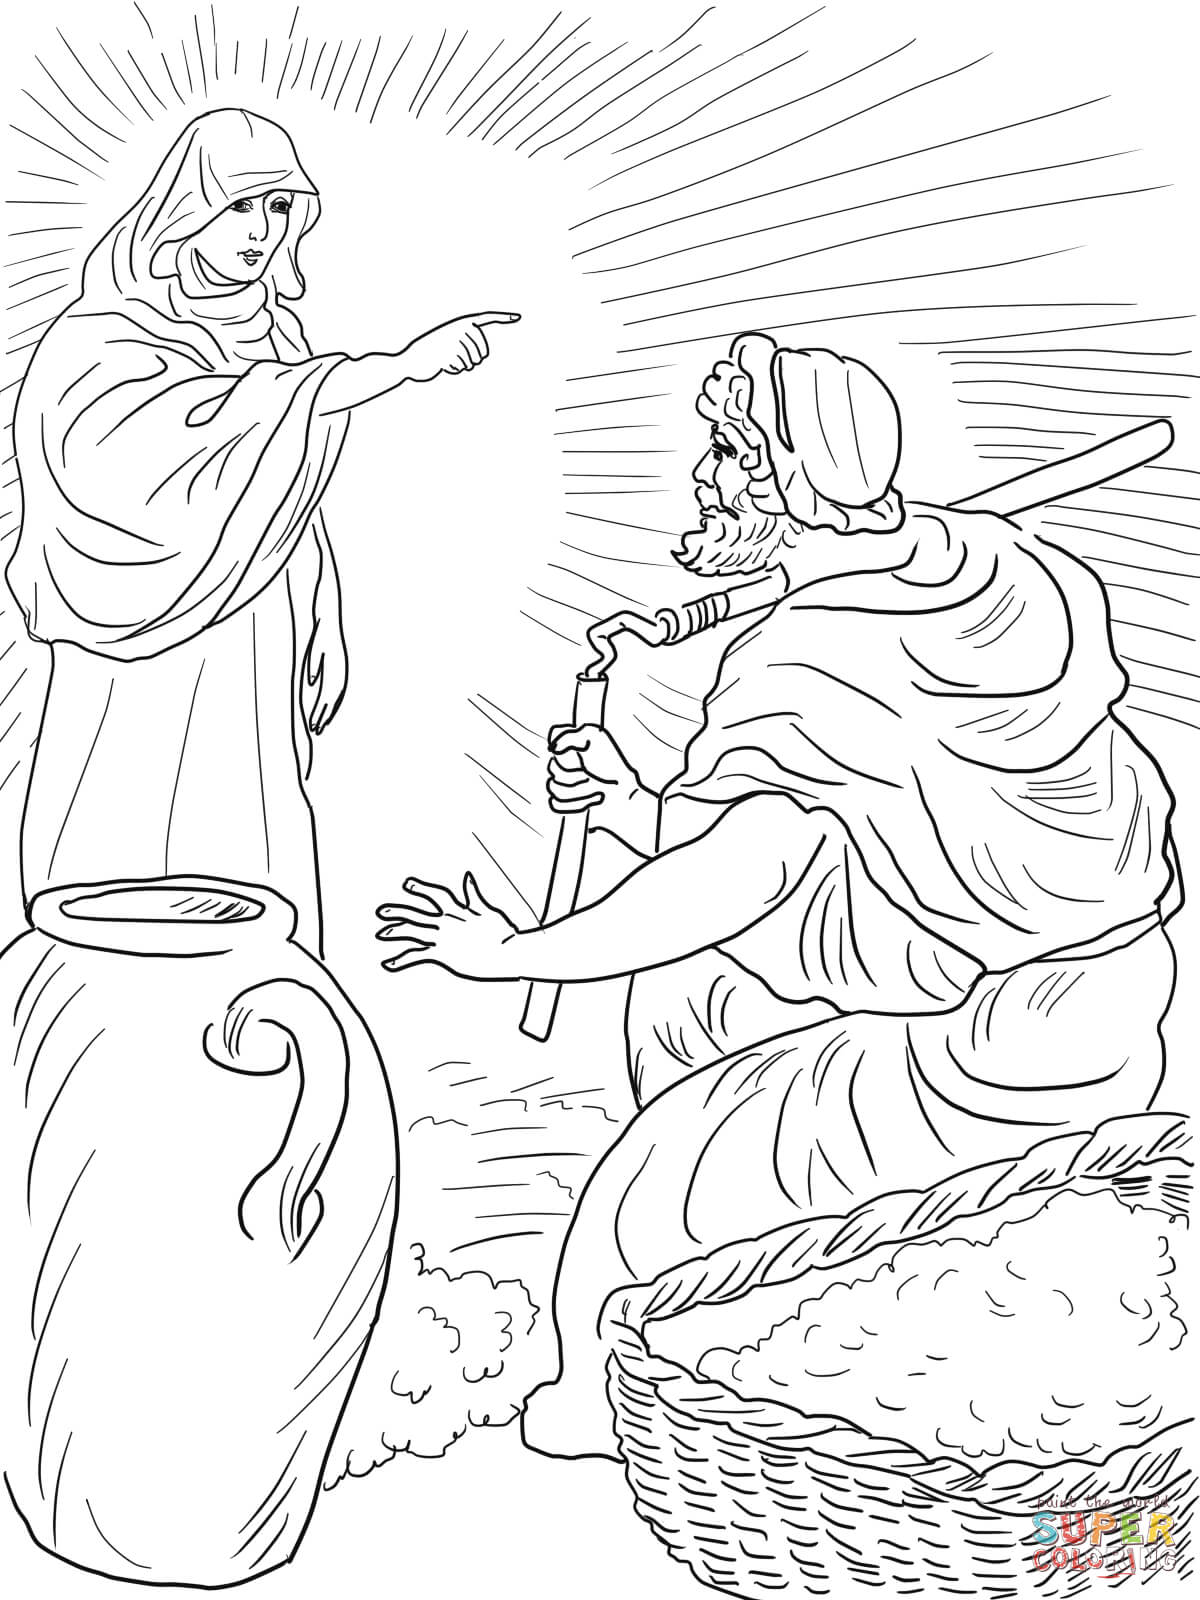 gideon coloring pages gideon coloring pages for the kids educative printable coloring pages gideon